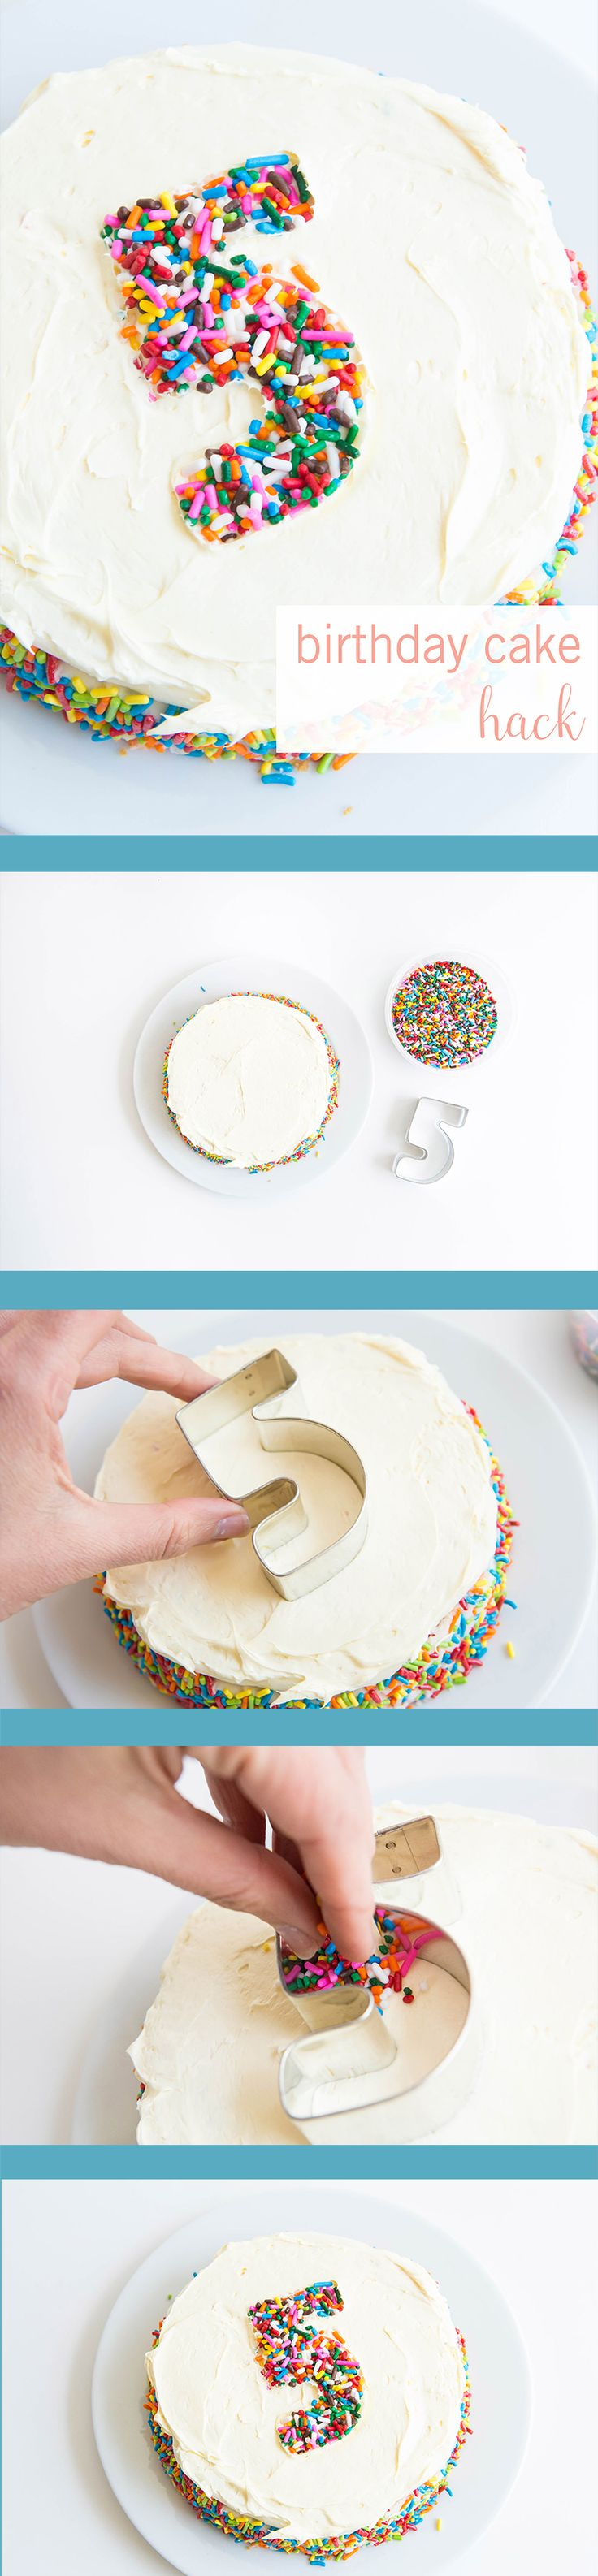 This food hack is going to change your life. Sometimes the fancy baking products needed to make a beautiful cake are less than kid-friendly, but this quick decorating trick is perfect for your kid's next party. Pick up some sprinkles and a cookie cutter and create the cutest cake around.